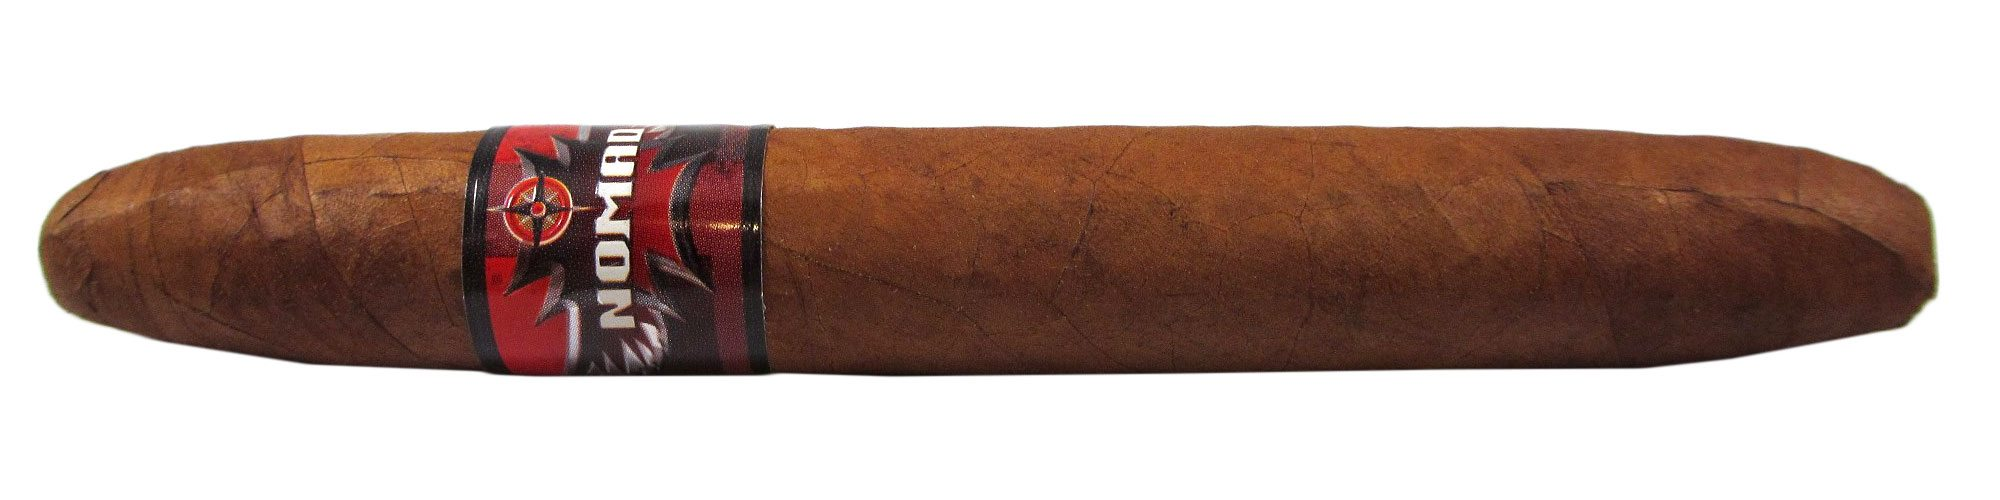 Blind Cigar Review: Nomad | Fugitive II